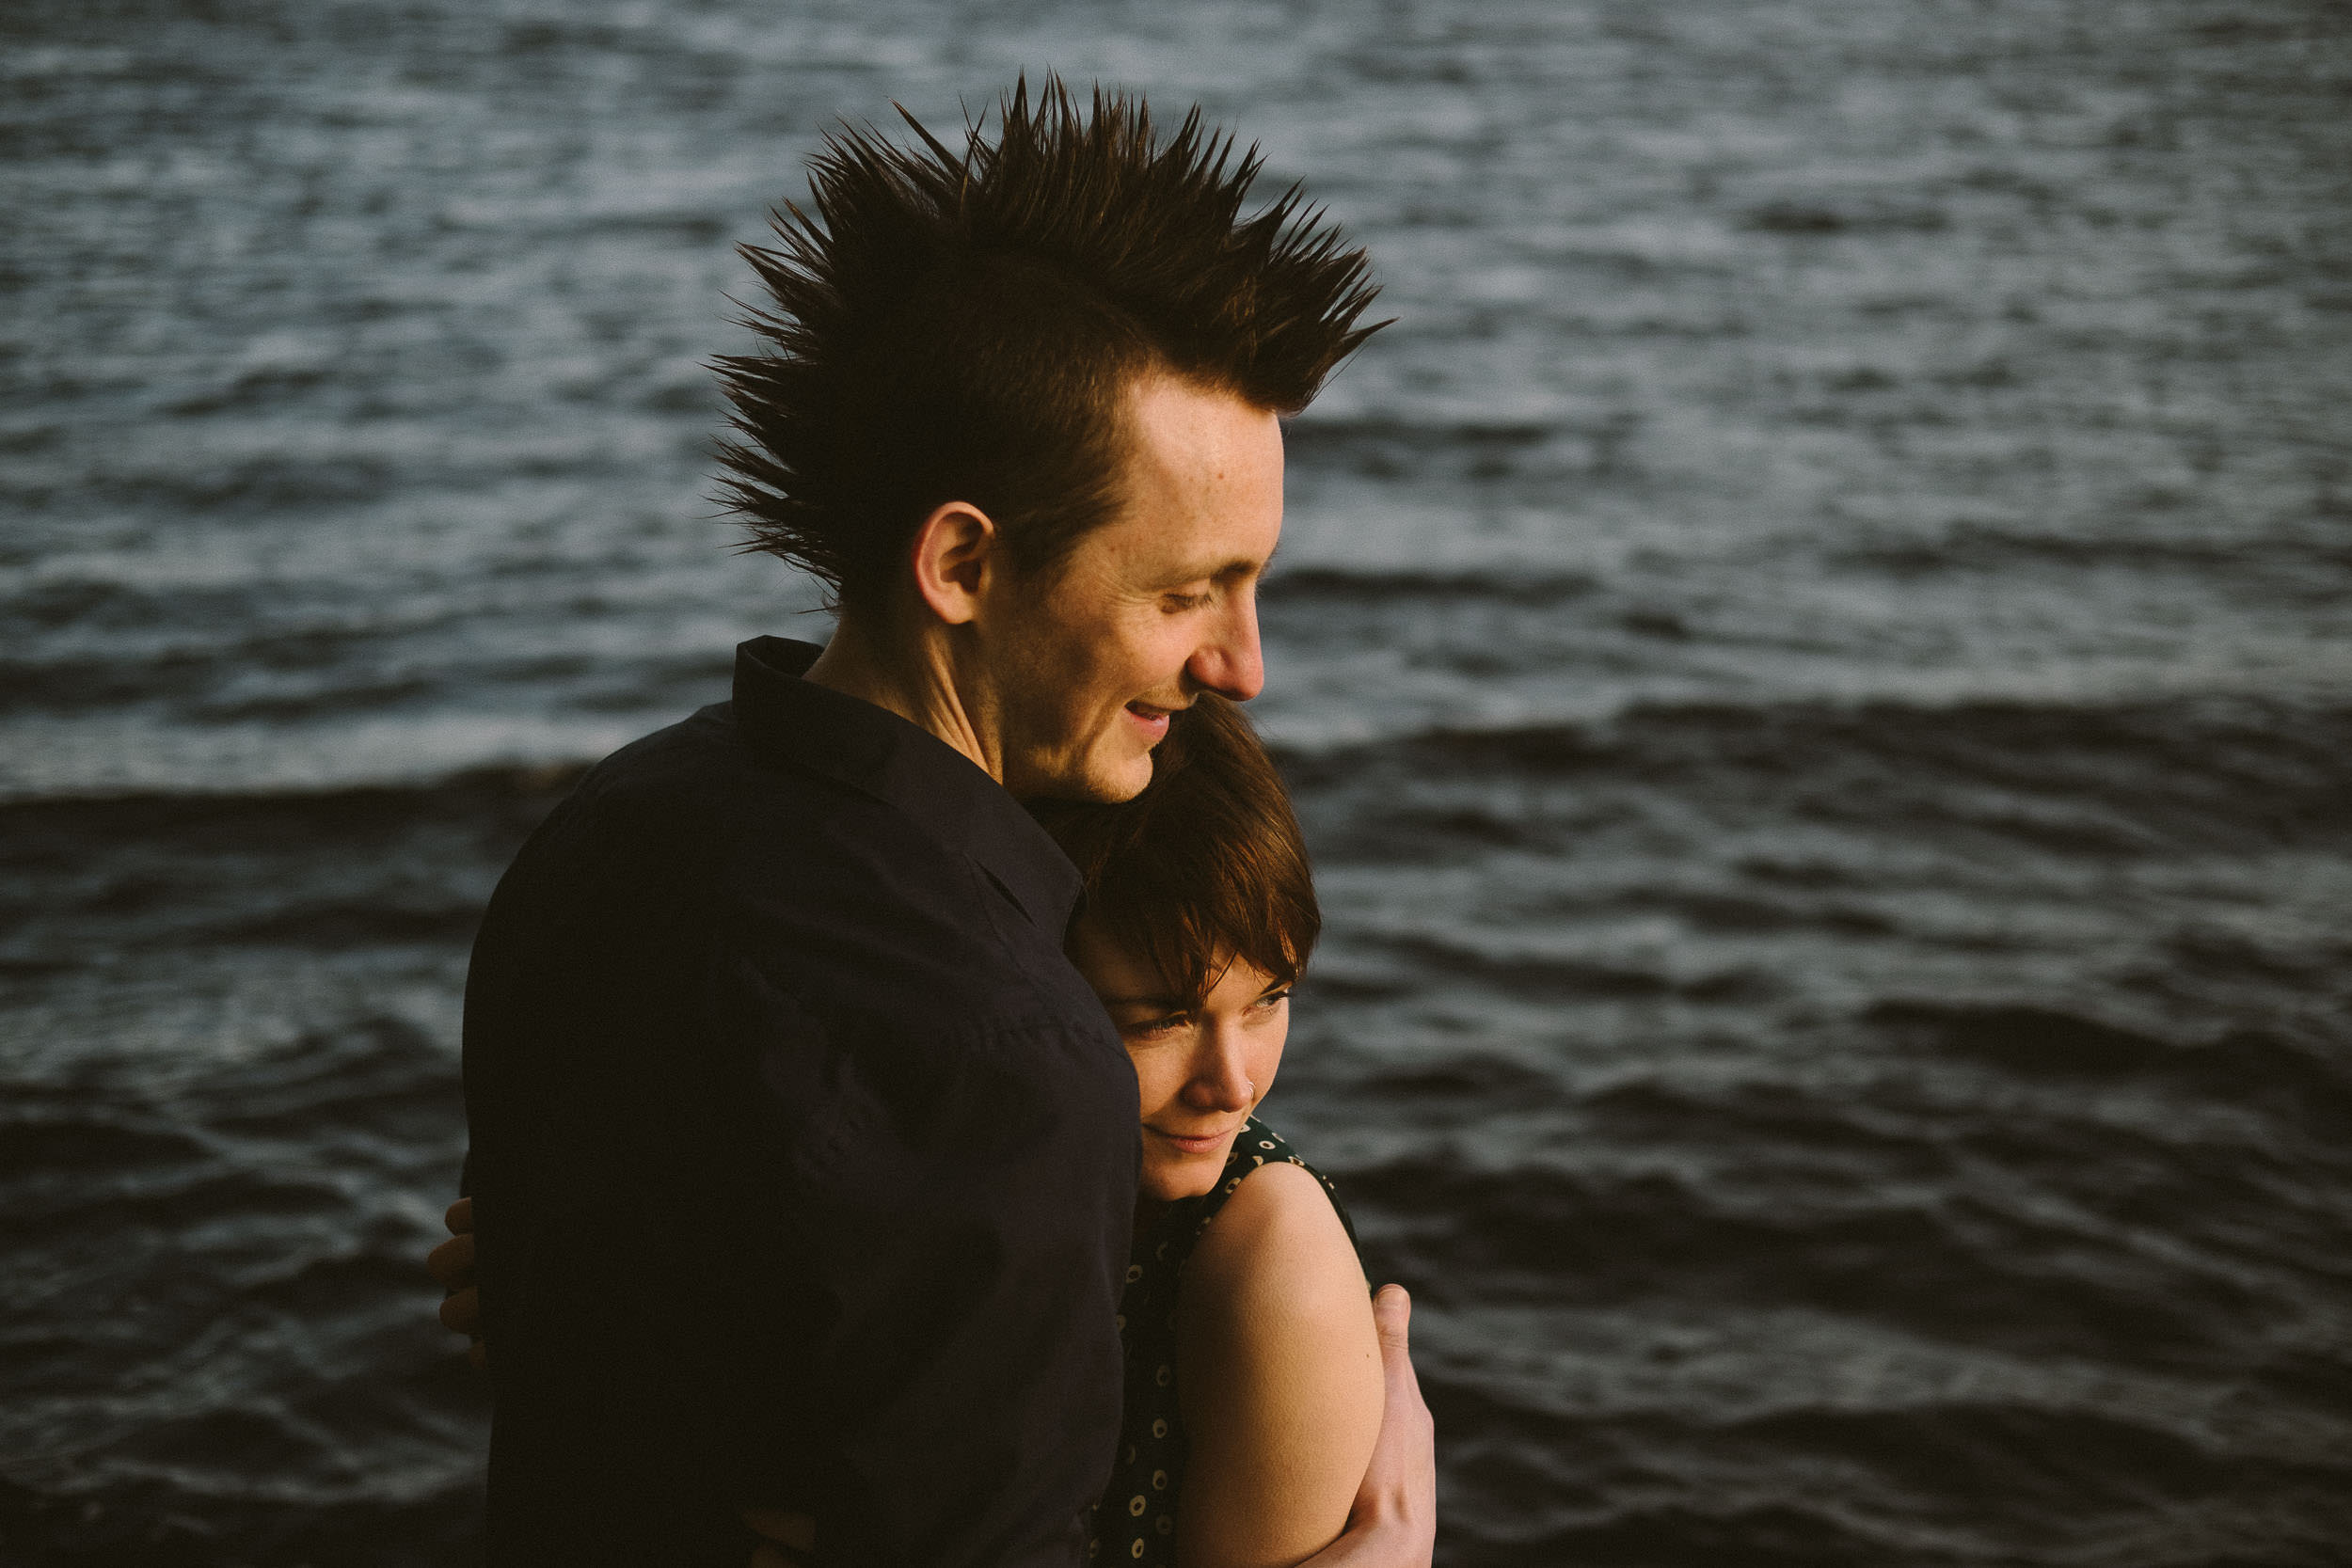 Punk couple with spiky hair cuddle with Kielder Water in the background